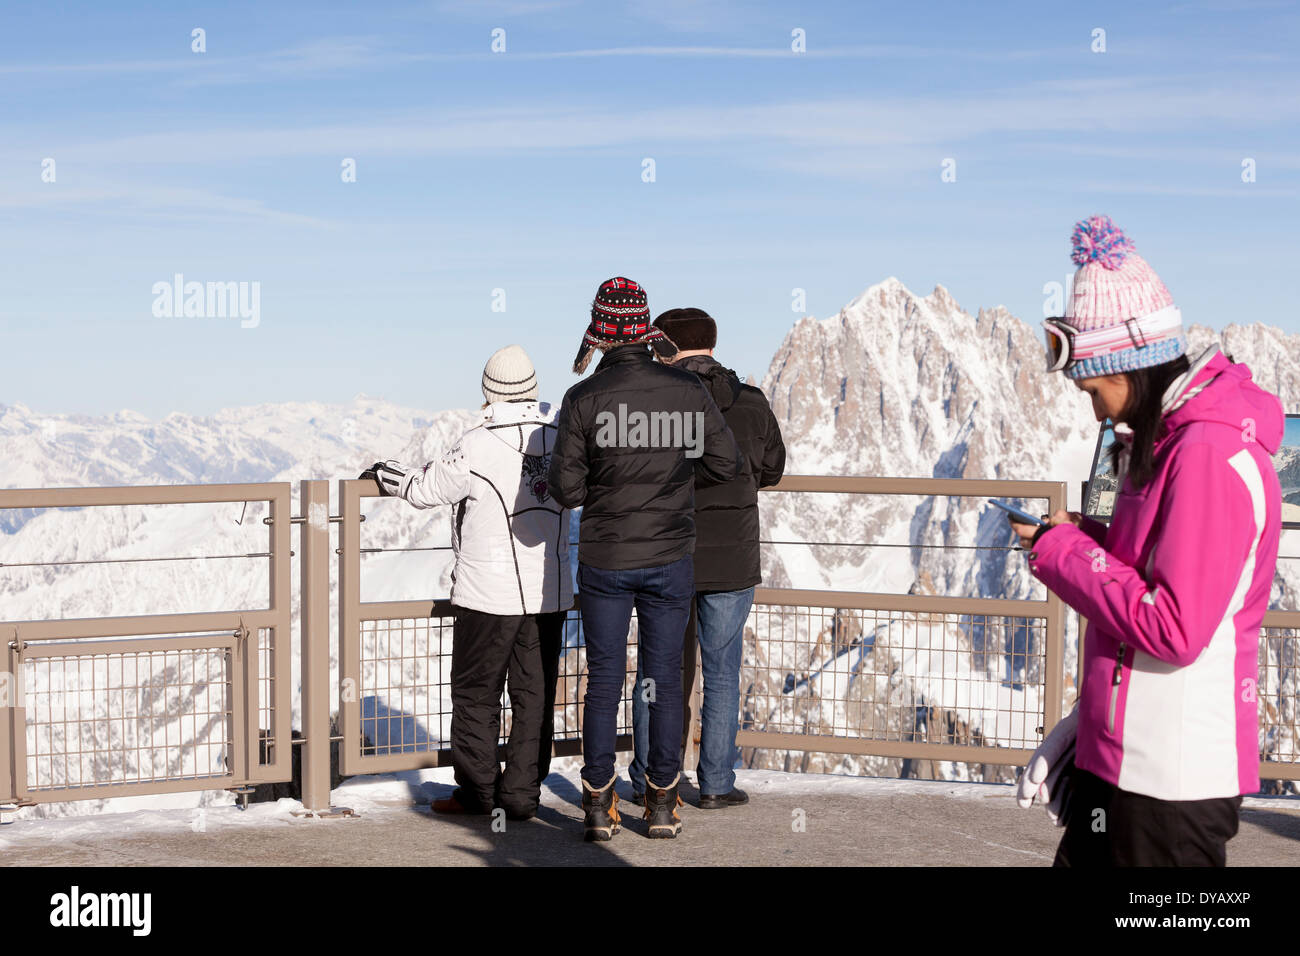 Tourists take photographs while visiting the Aiguille Du Midi (3842m) mountain top lookout point above Chamonix Mont-Blanc. - Stock Image